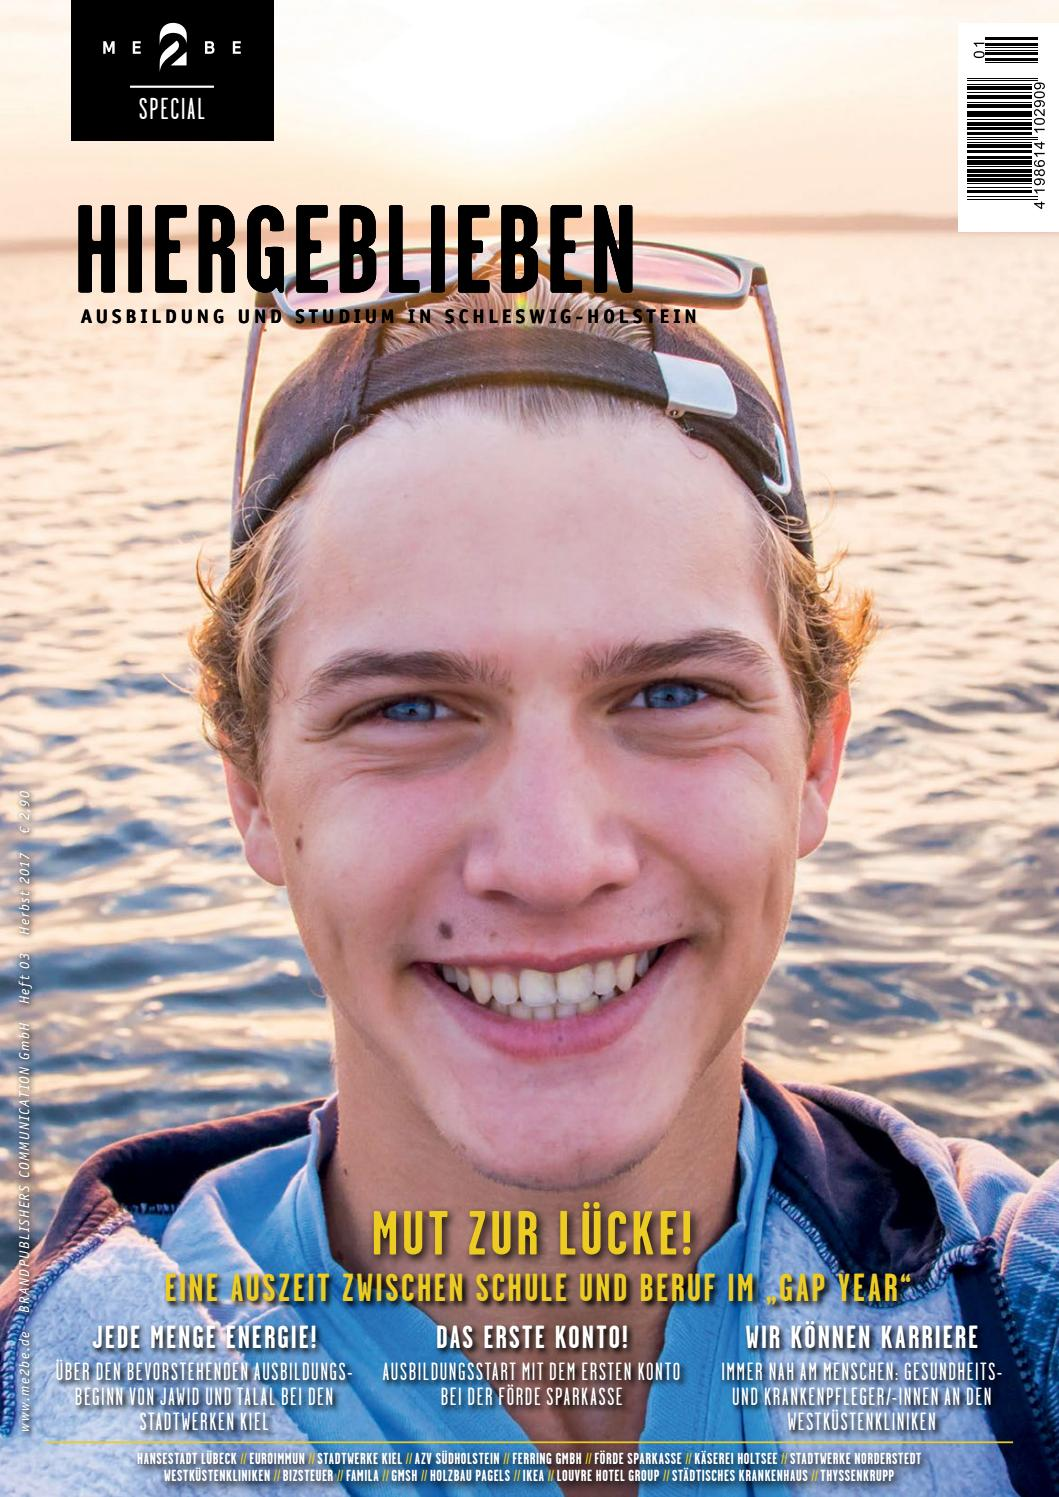 Me2be Hiergeblieben Gap Year Special By Me2be Issuu